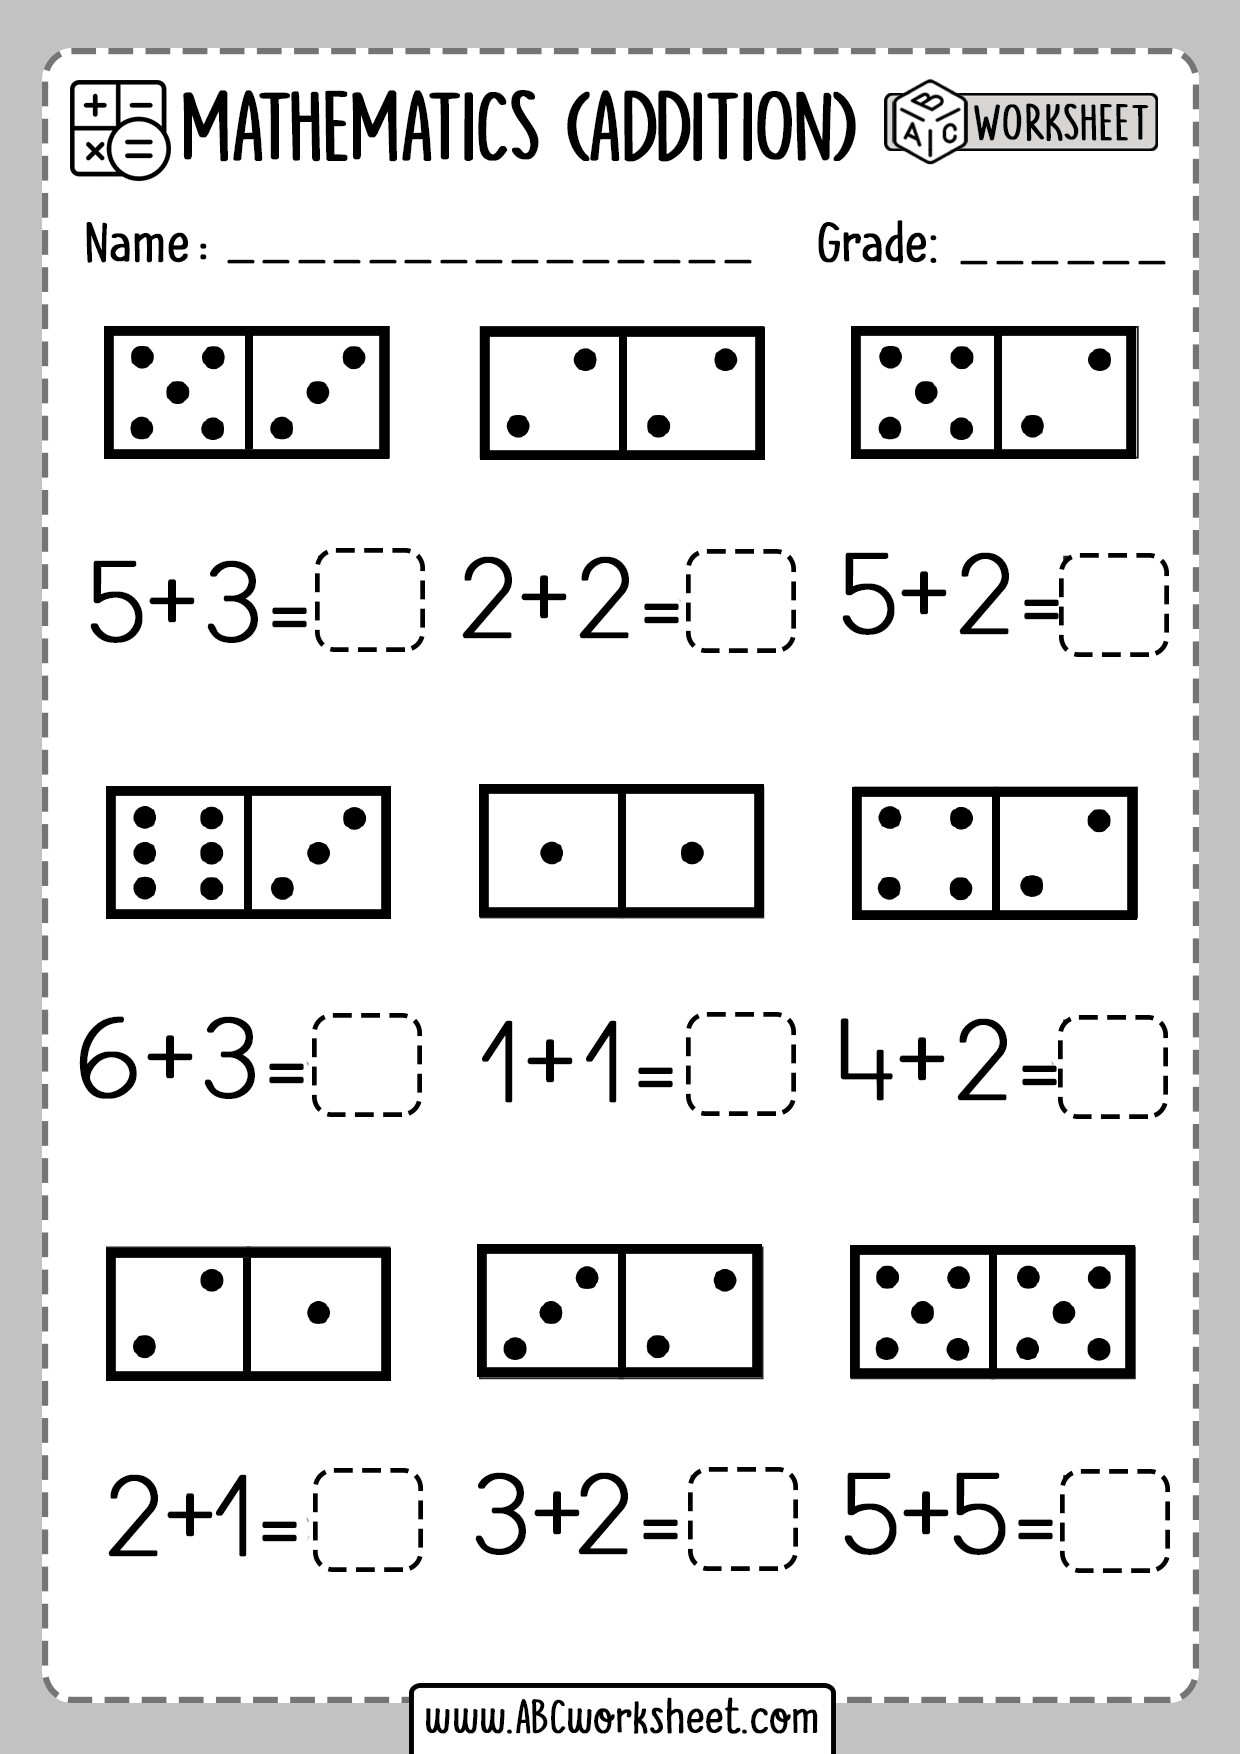 Kindergarten Addition Math Worksheets Printable